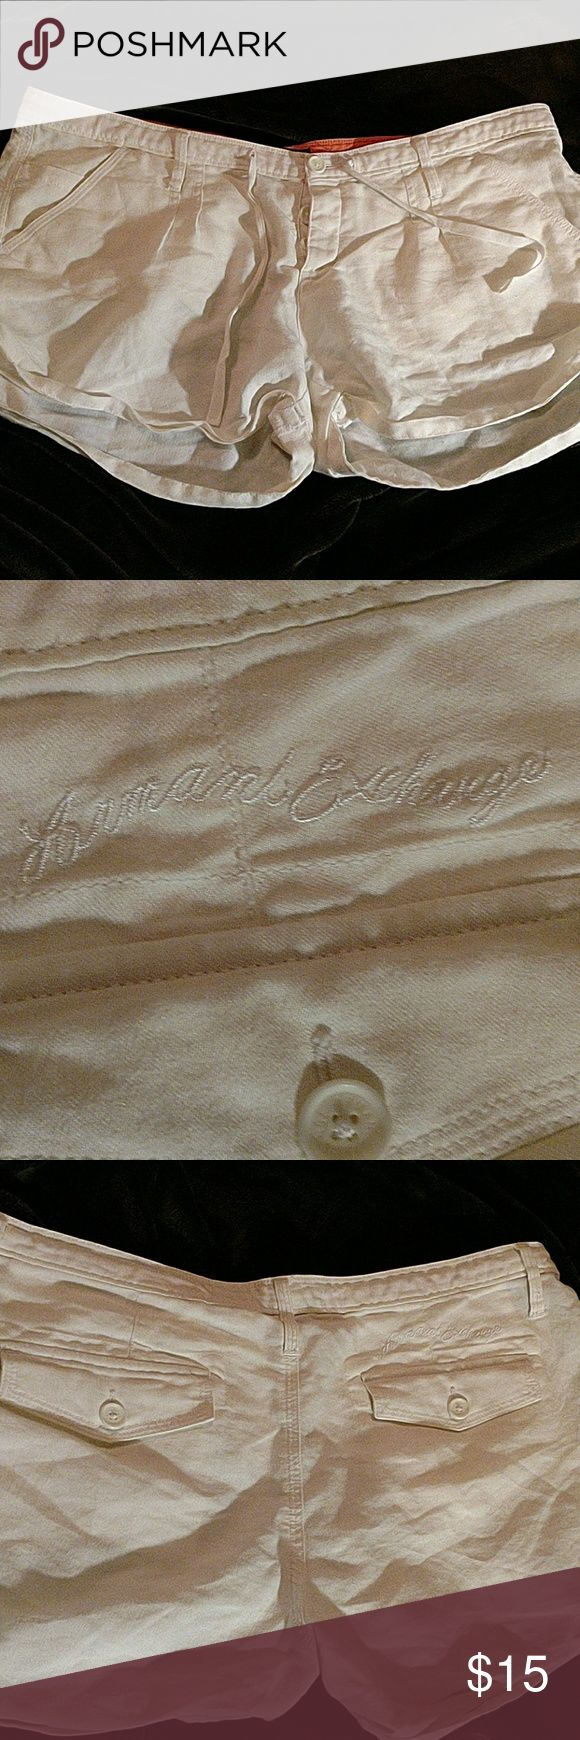 Armani Exchange shorts White linen shirts, button front closet. Button down back pocket flaps. Please see all photos for full description and details Armani Exchange Shorts